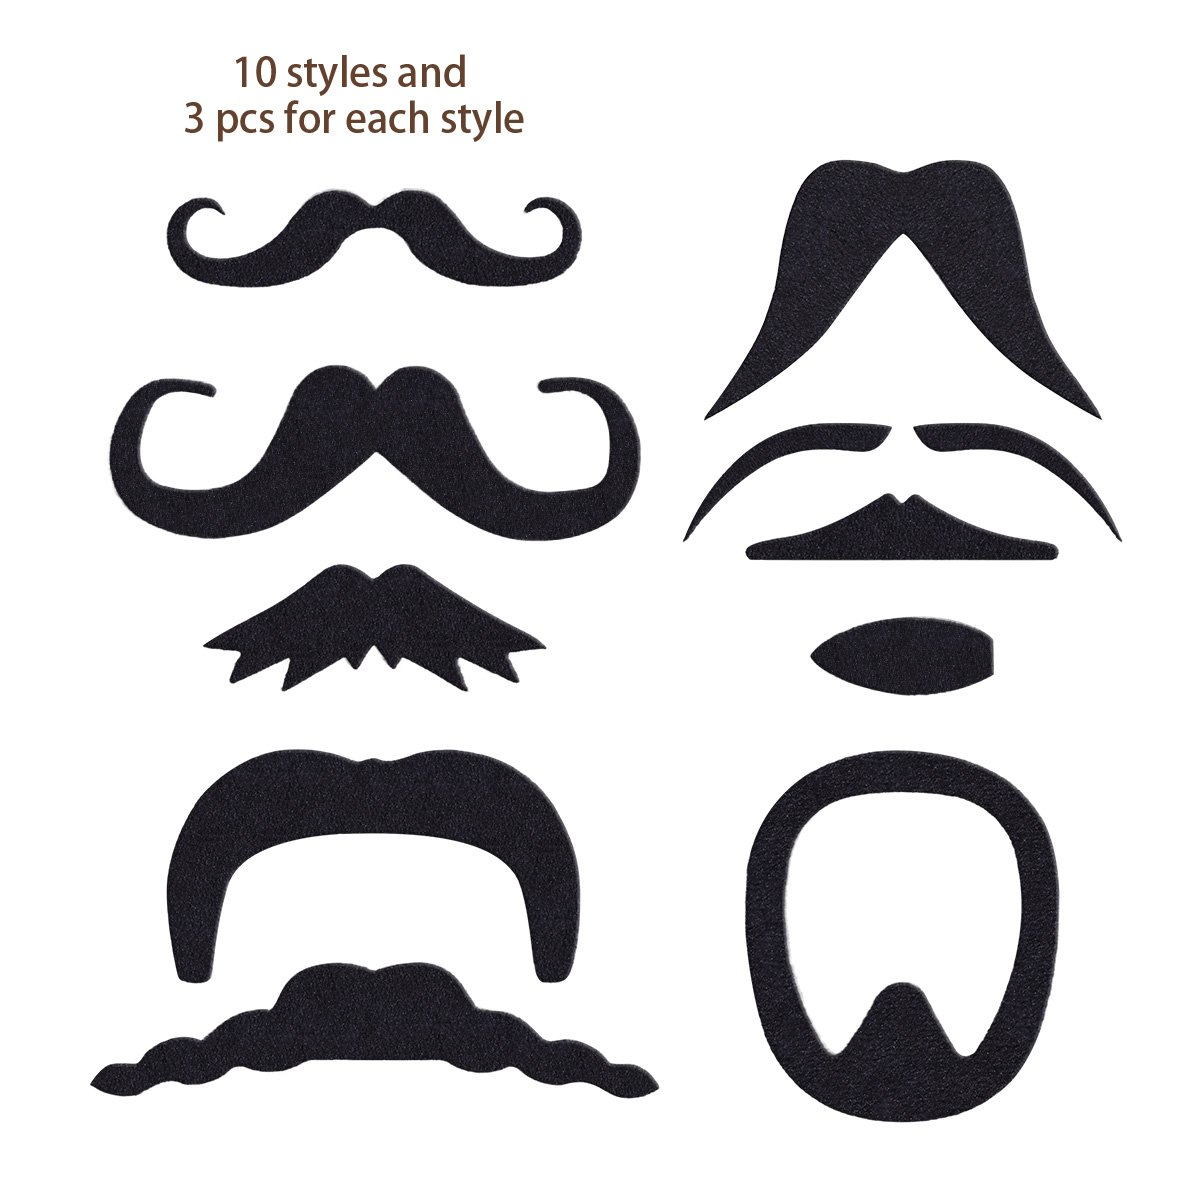 LUOEM Self Adhesive Fake Mustaches Novelty Party Favors Supplies for Funny Cosplay Party Halloween Christmas|Perfect for Masquerade Party Performance 30 pack